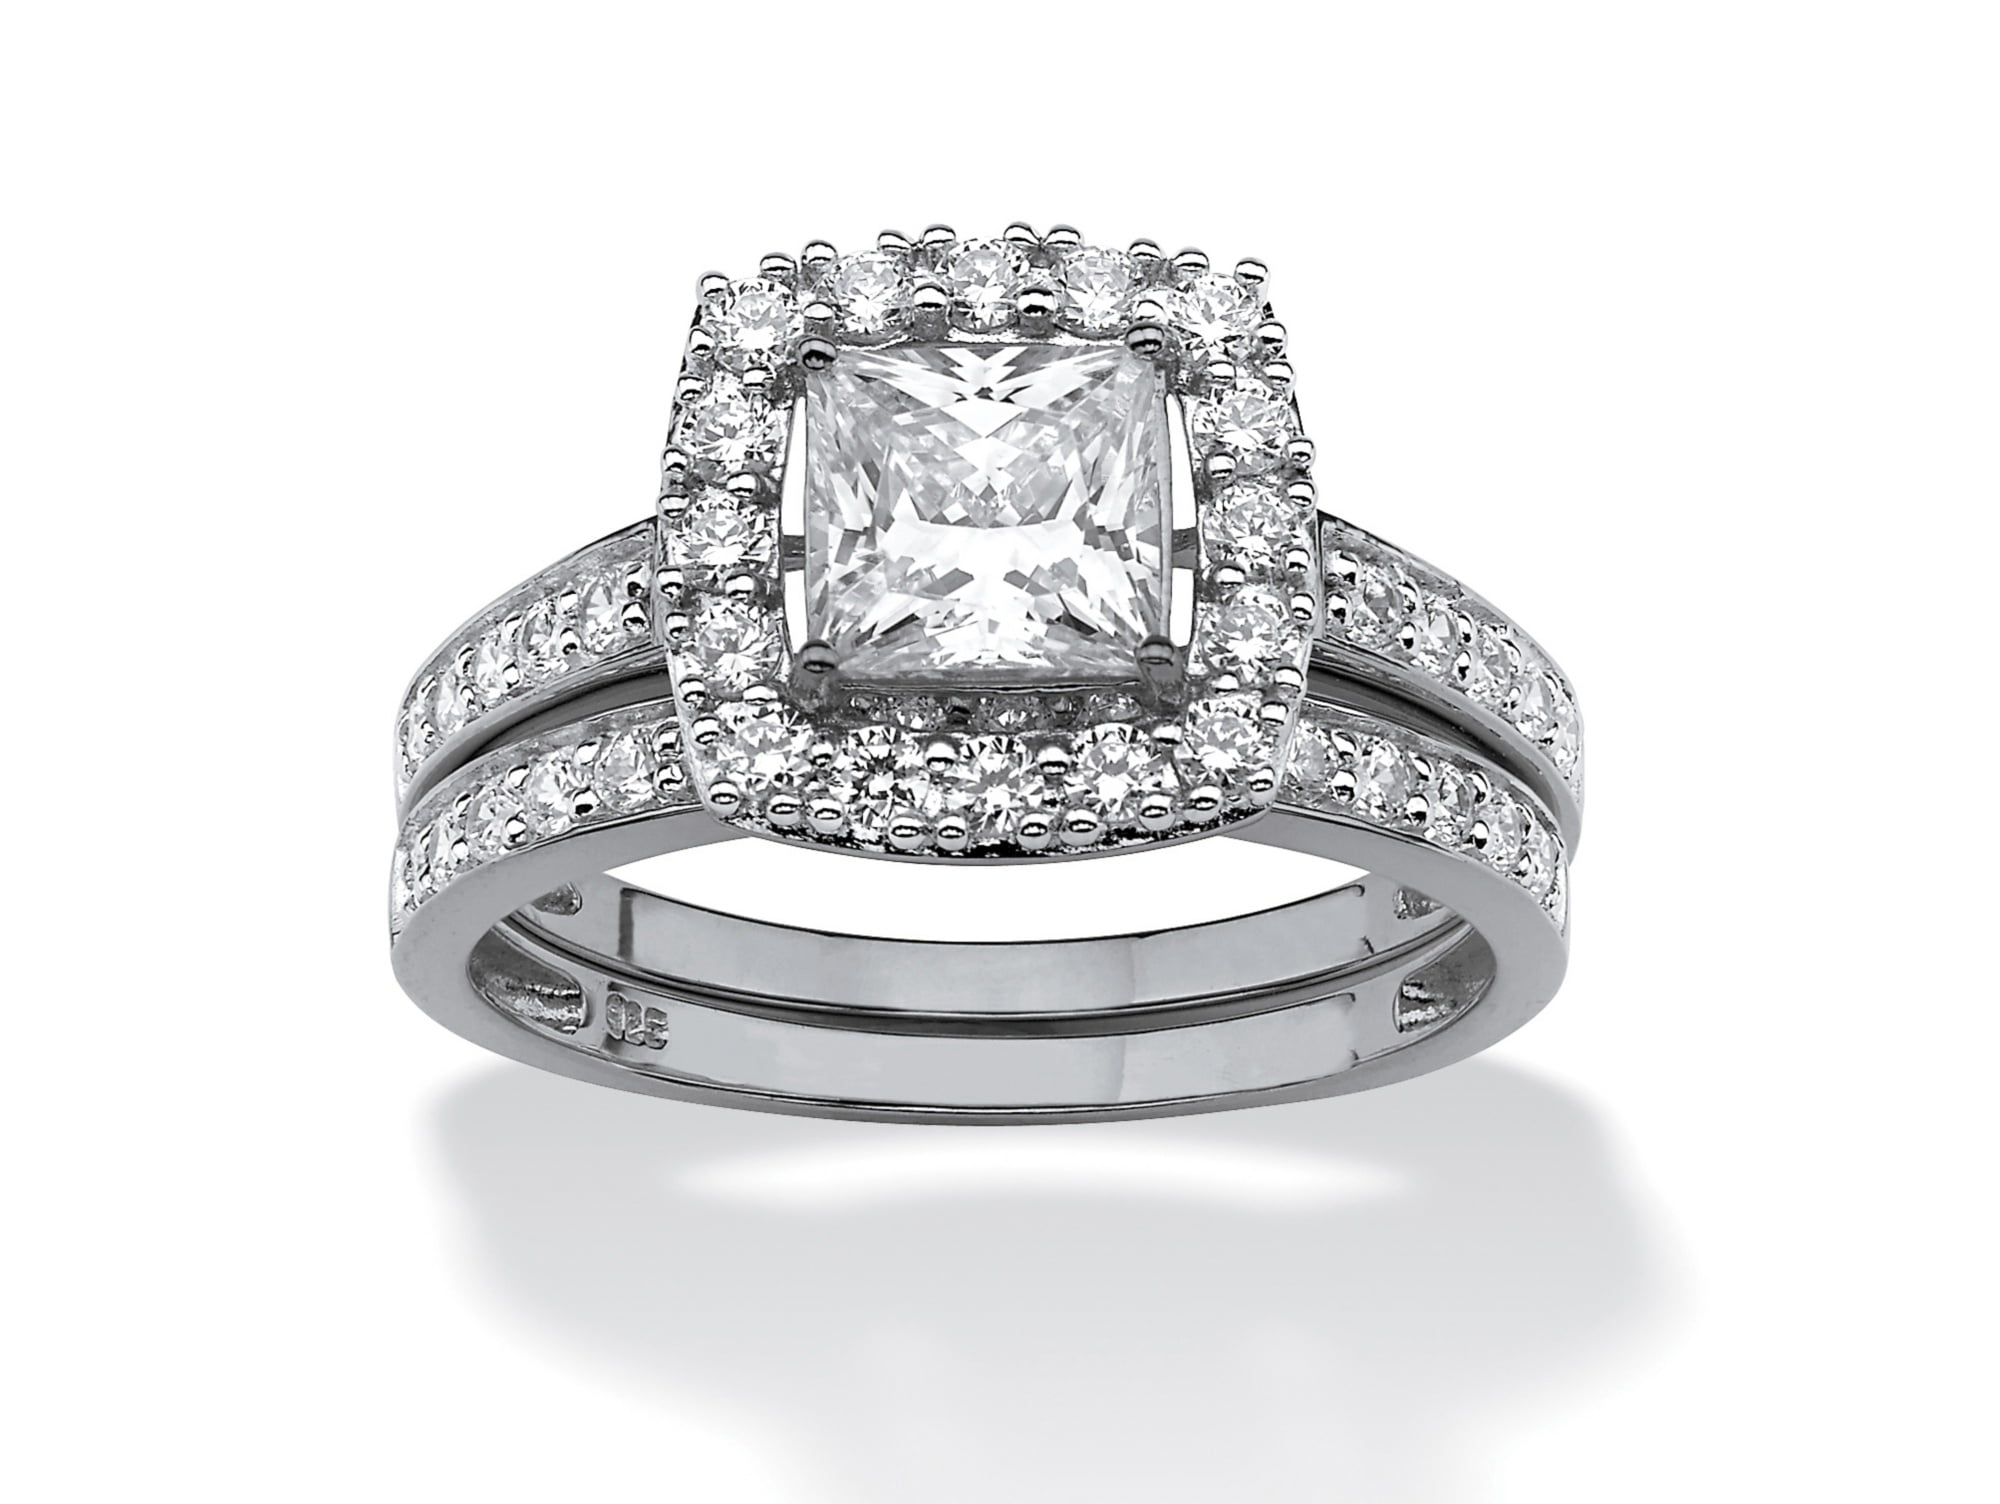 1.93 TCW Princess-Cut Cubic Zirconia Two-Piece Bridal Set in Platinum over Sterling Silver by PalmBeach Jewelry